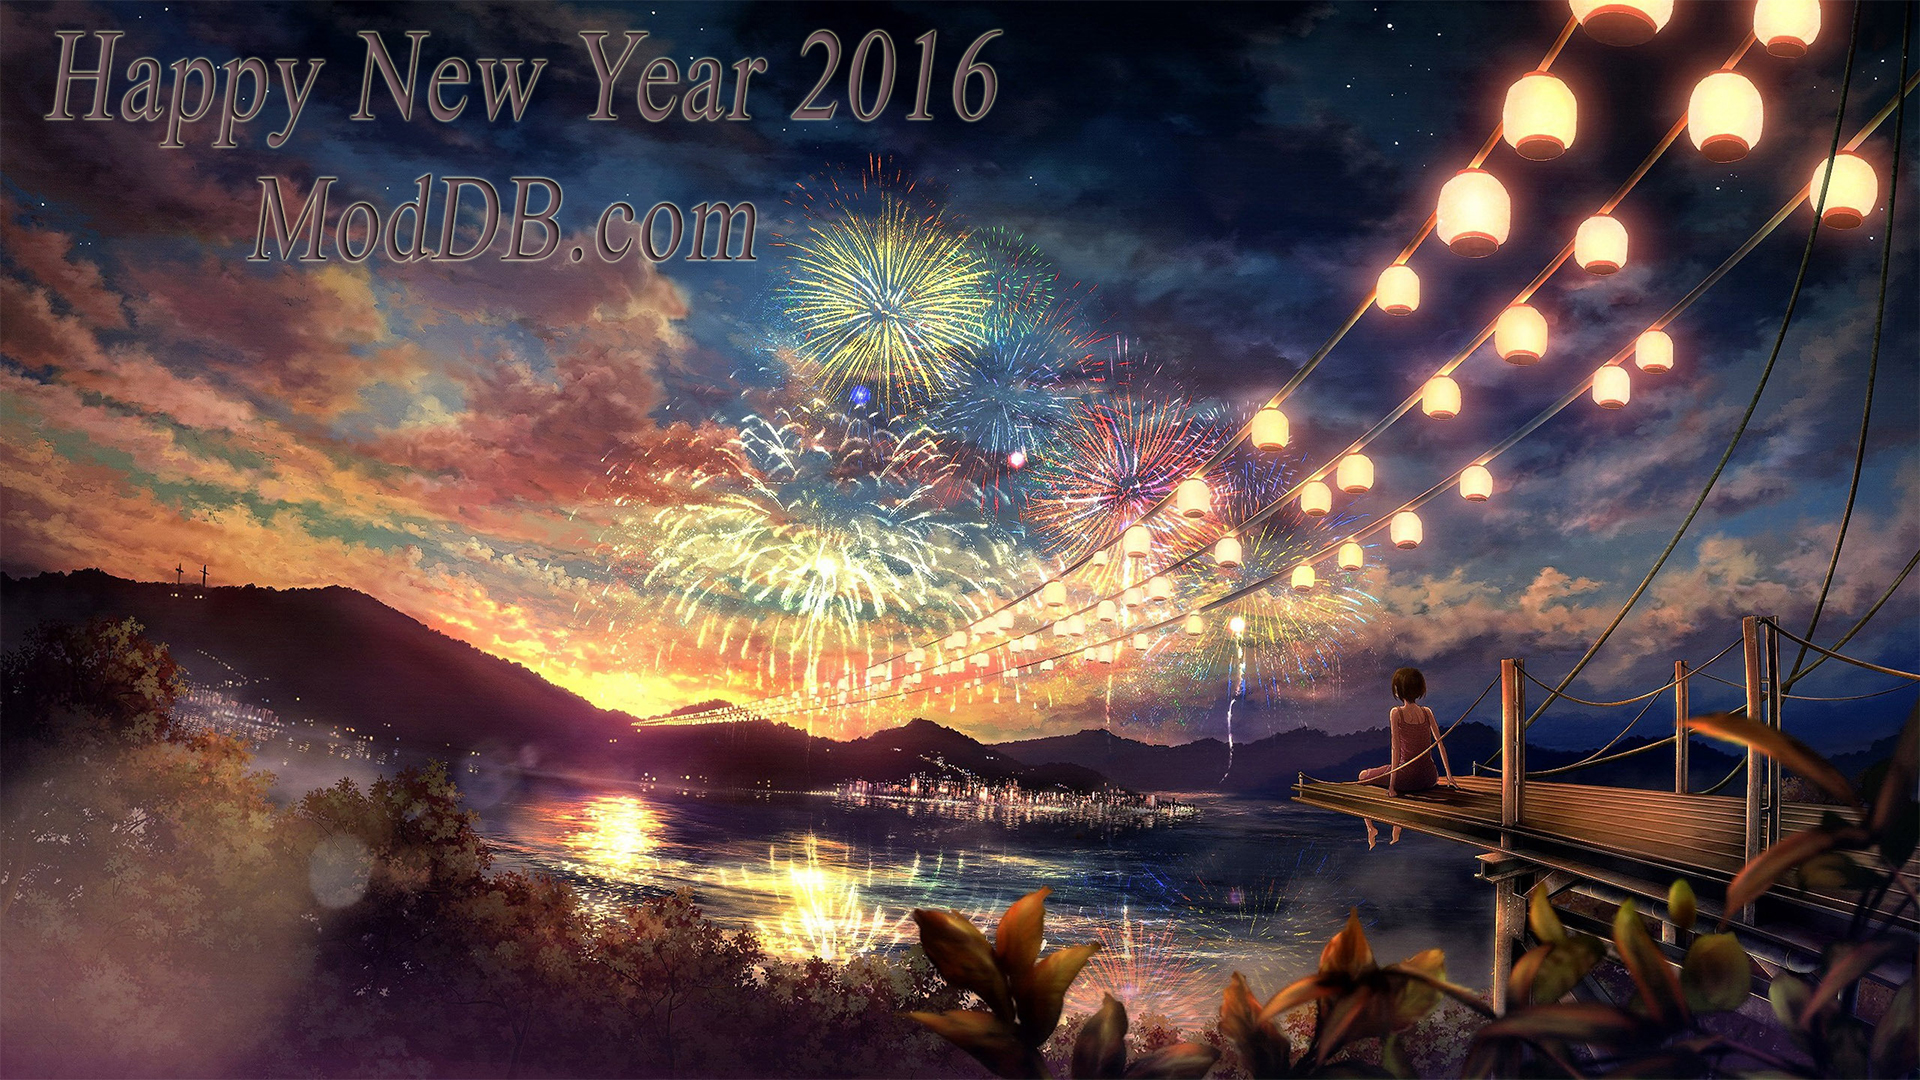 I wish you all a Happy New Year 2016 image   Anime Fans of modDB         New Year 2016  view original